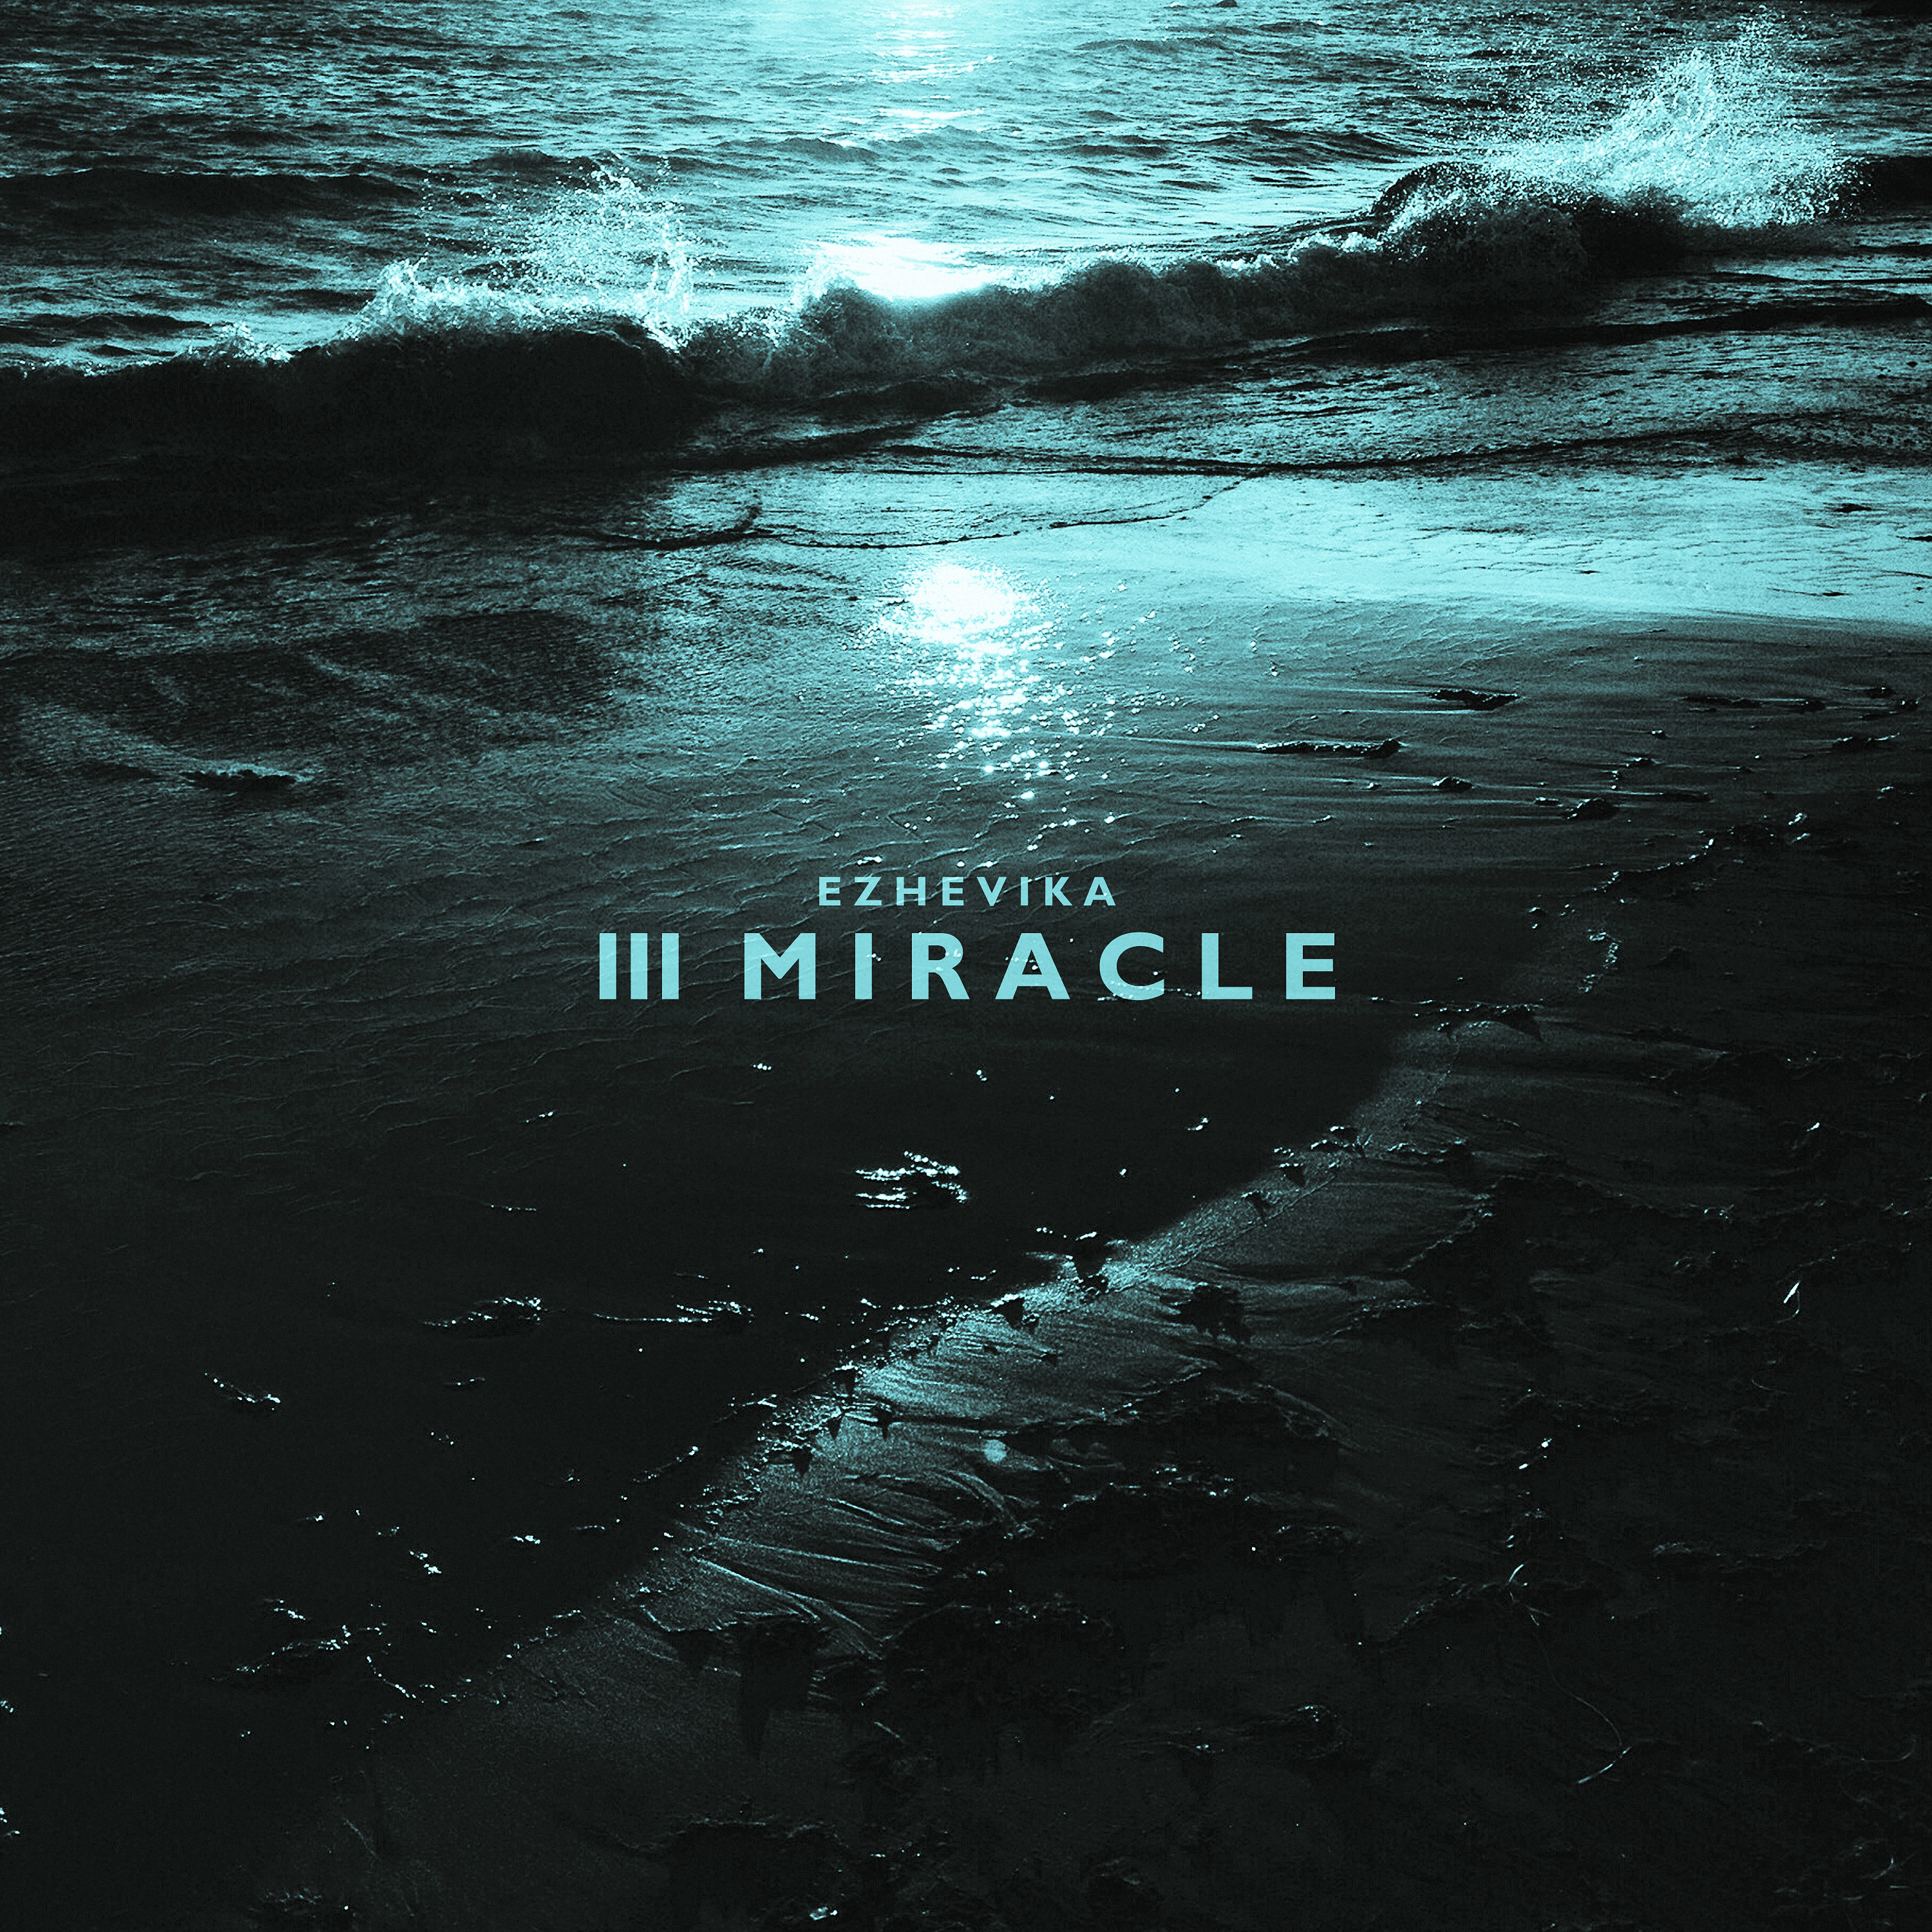 III Miracle cover